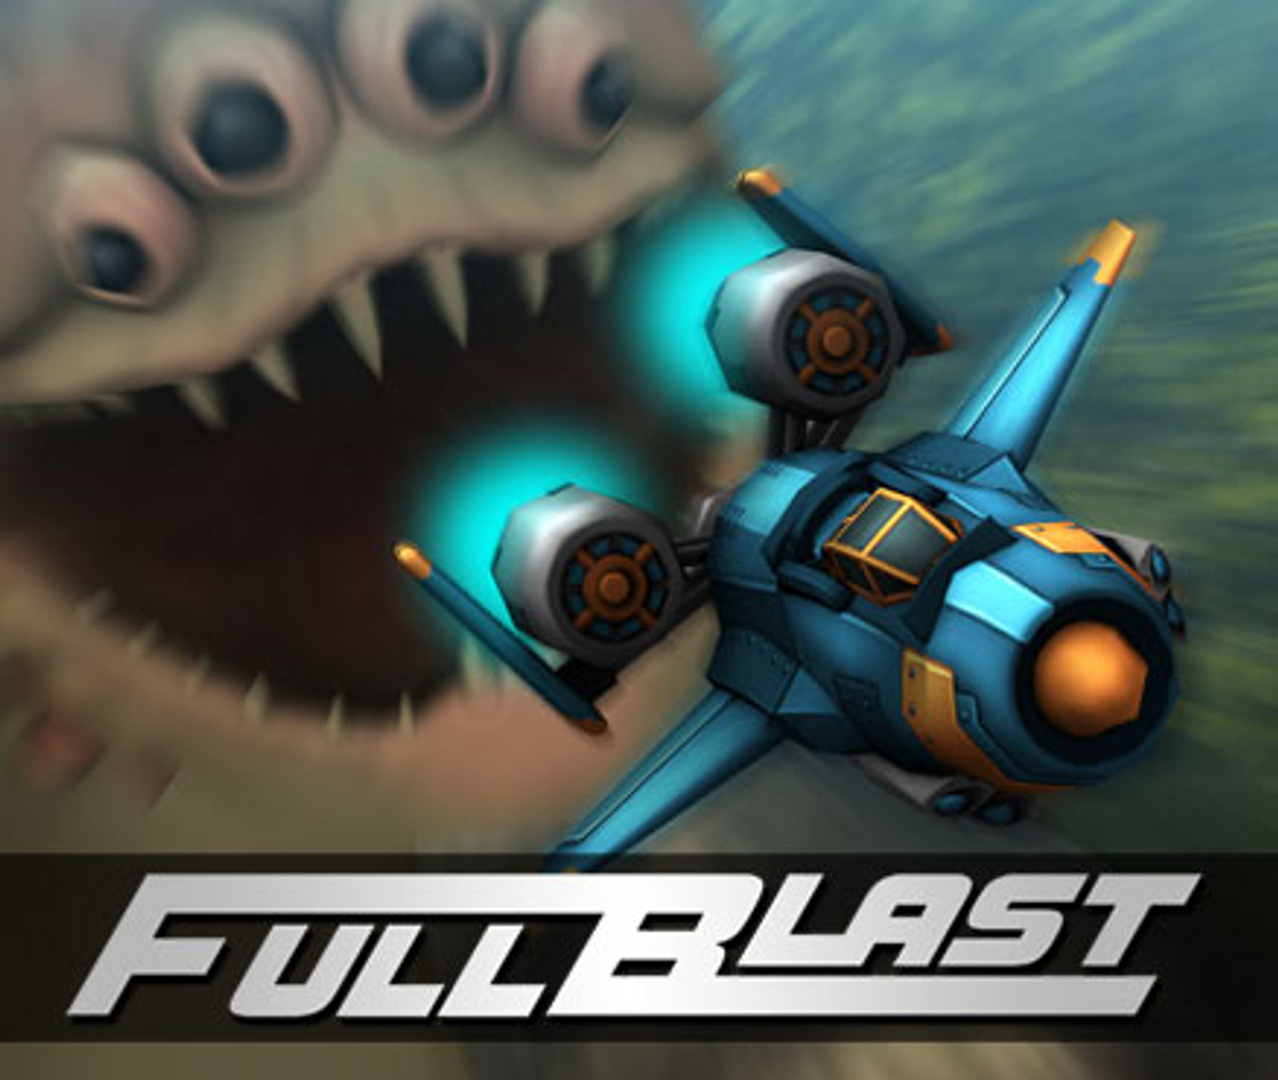 buy FullBlast cd key for psn platform